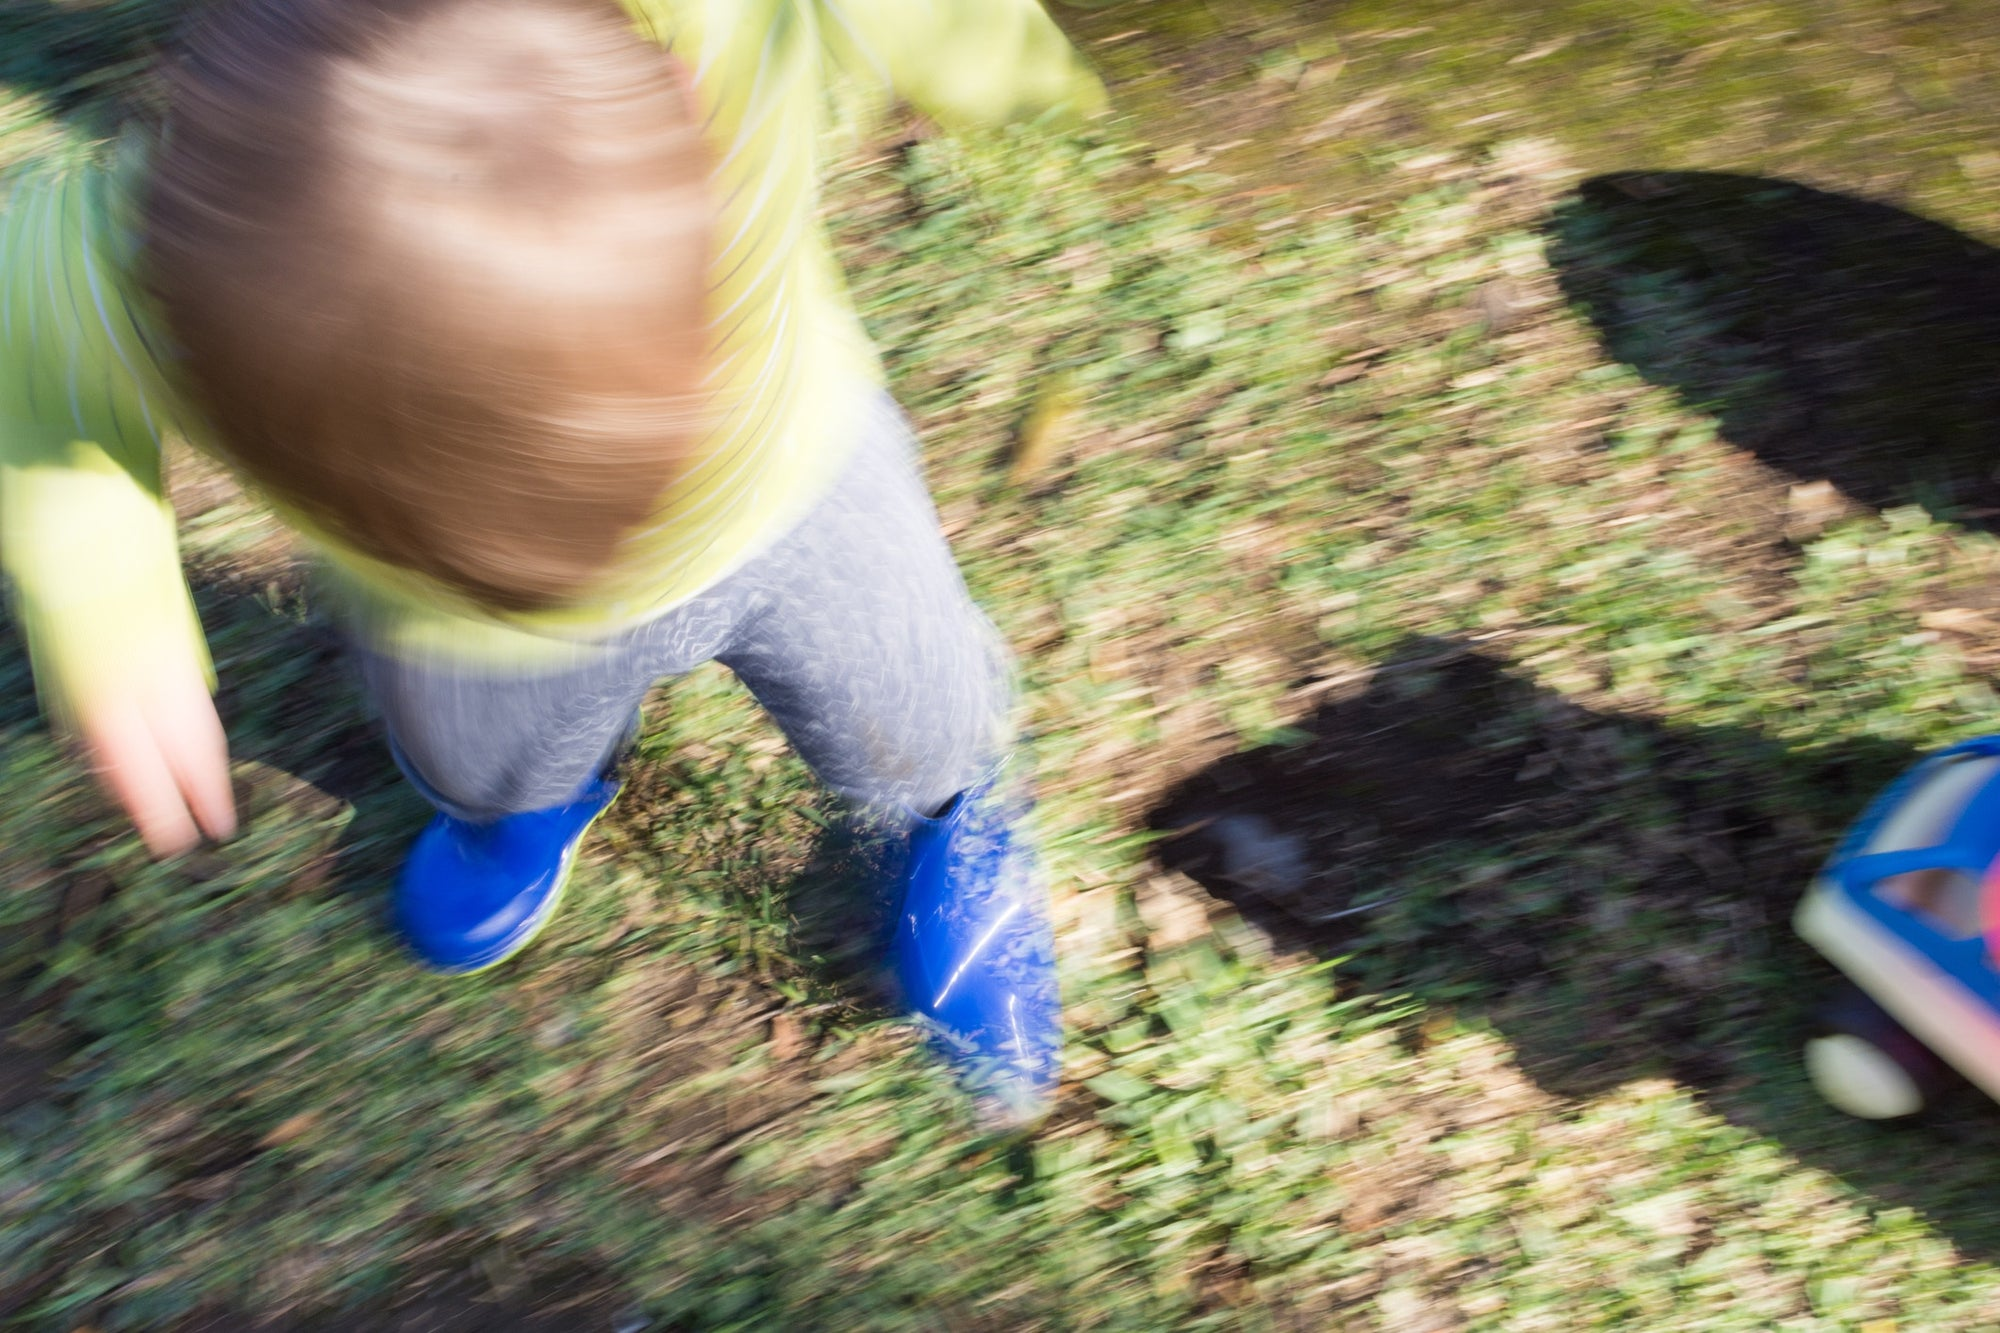 blur image of a kid playing in the garden